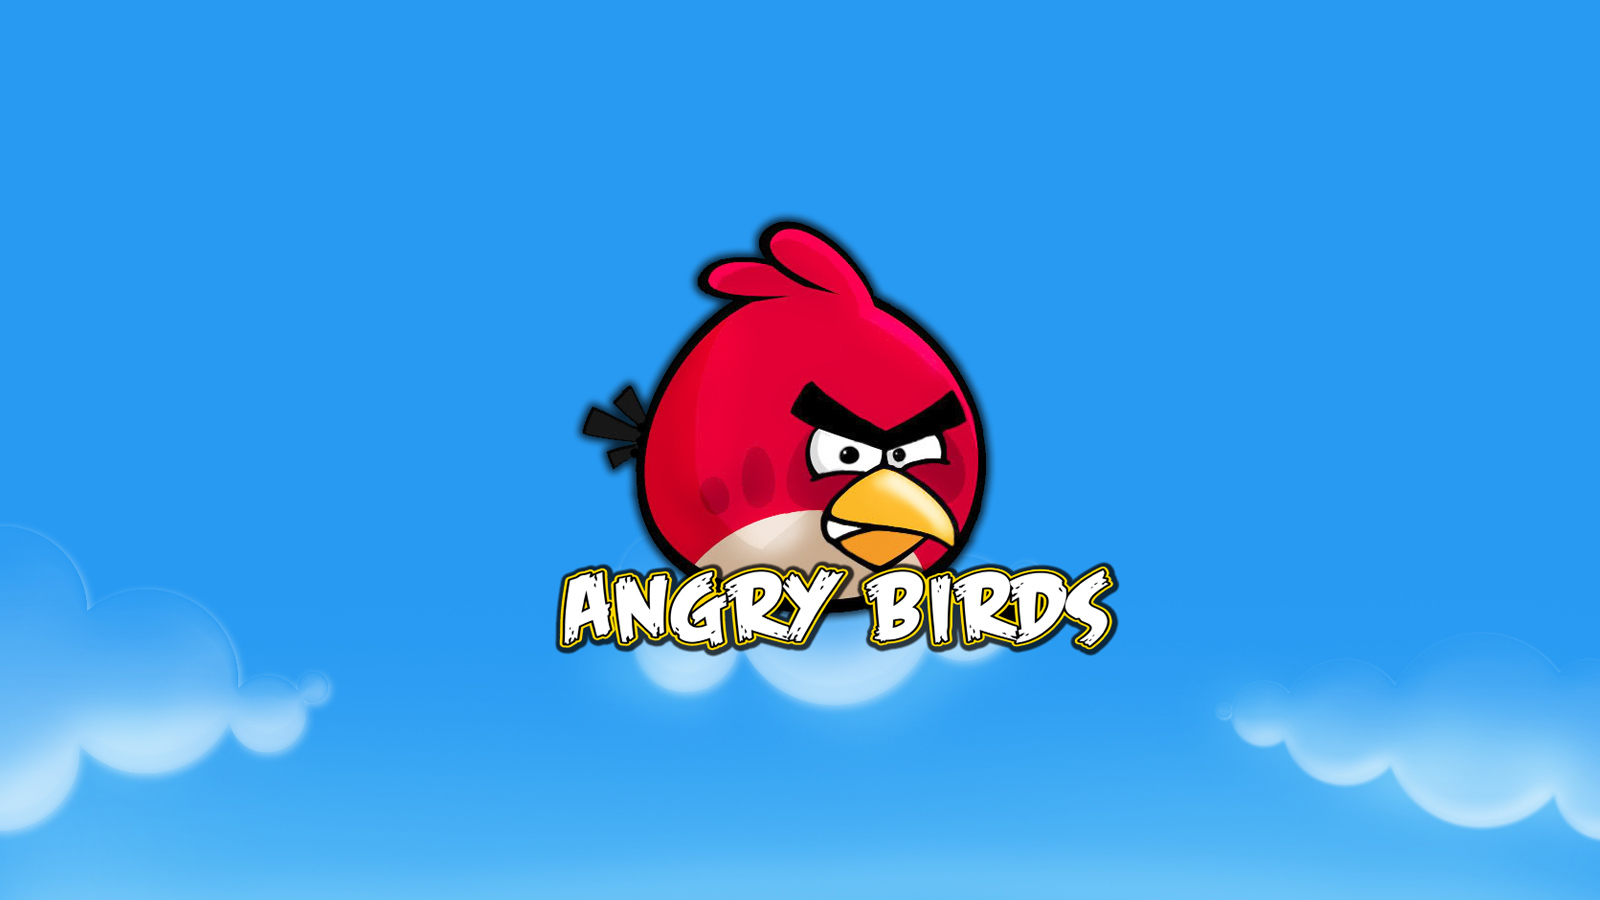 Angry Birds   PCTechNotes PC Tips Tricks and Tweaks 1600x900